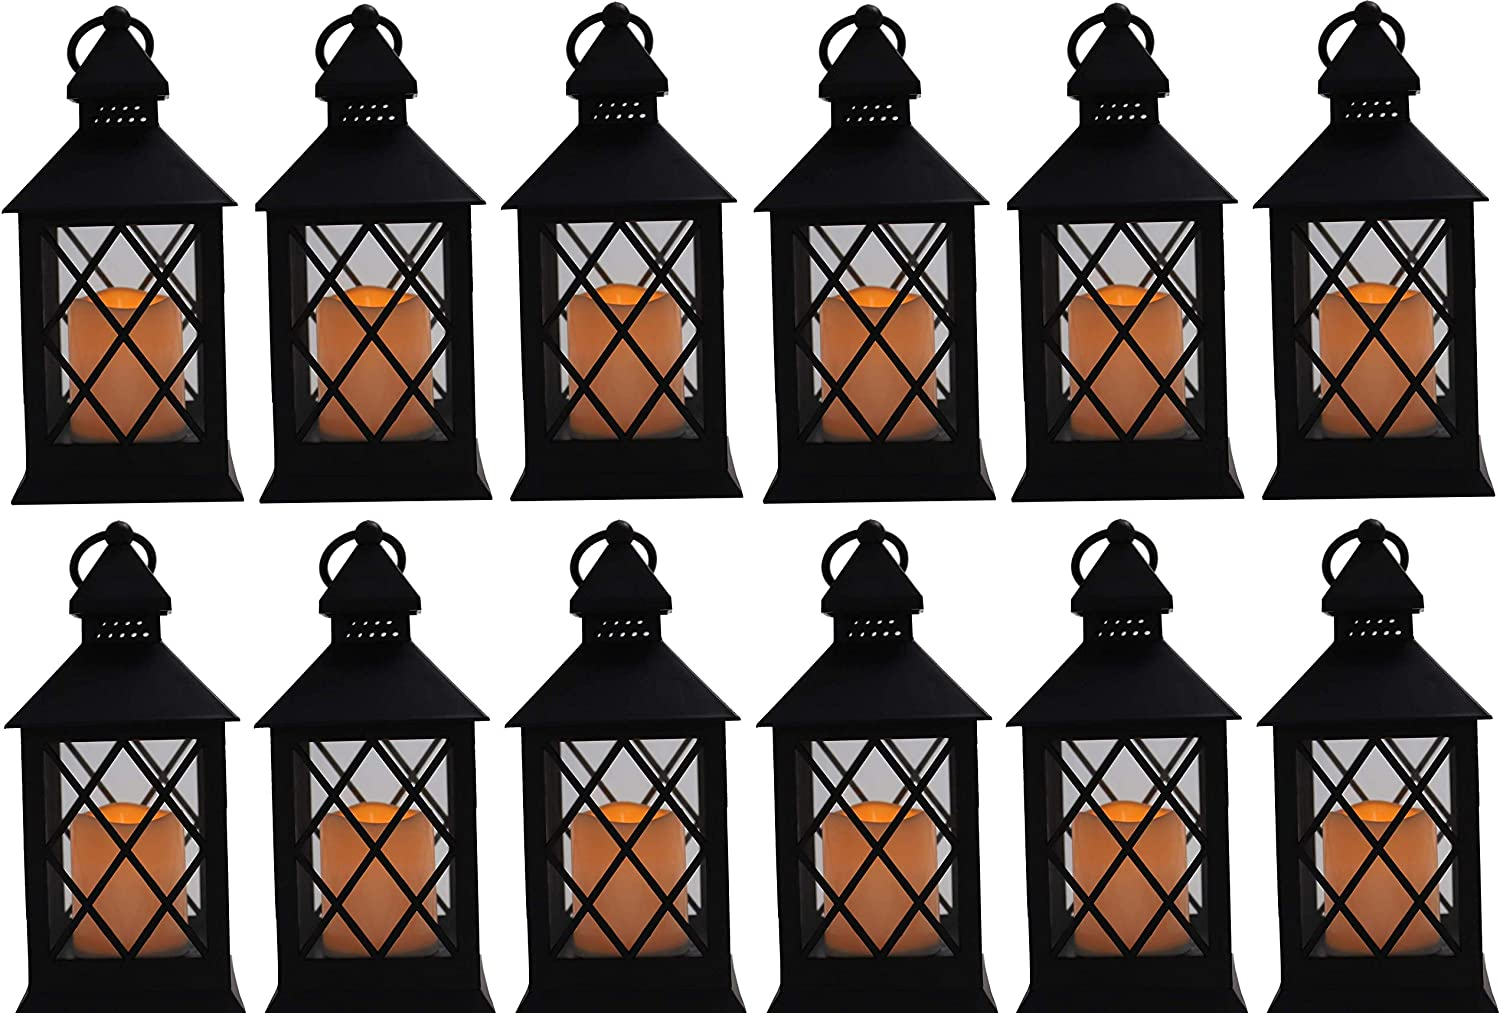 """10"""" Vintage Rustic Decorative Electric Candle Lantern Lamp with LED Candle Light for Indoor and Outdoor Decor, Battery Powered Candles Great for Wedding Centerpieces, Garden and Home (12, Style 8)"""